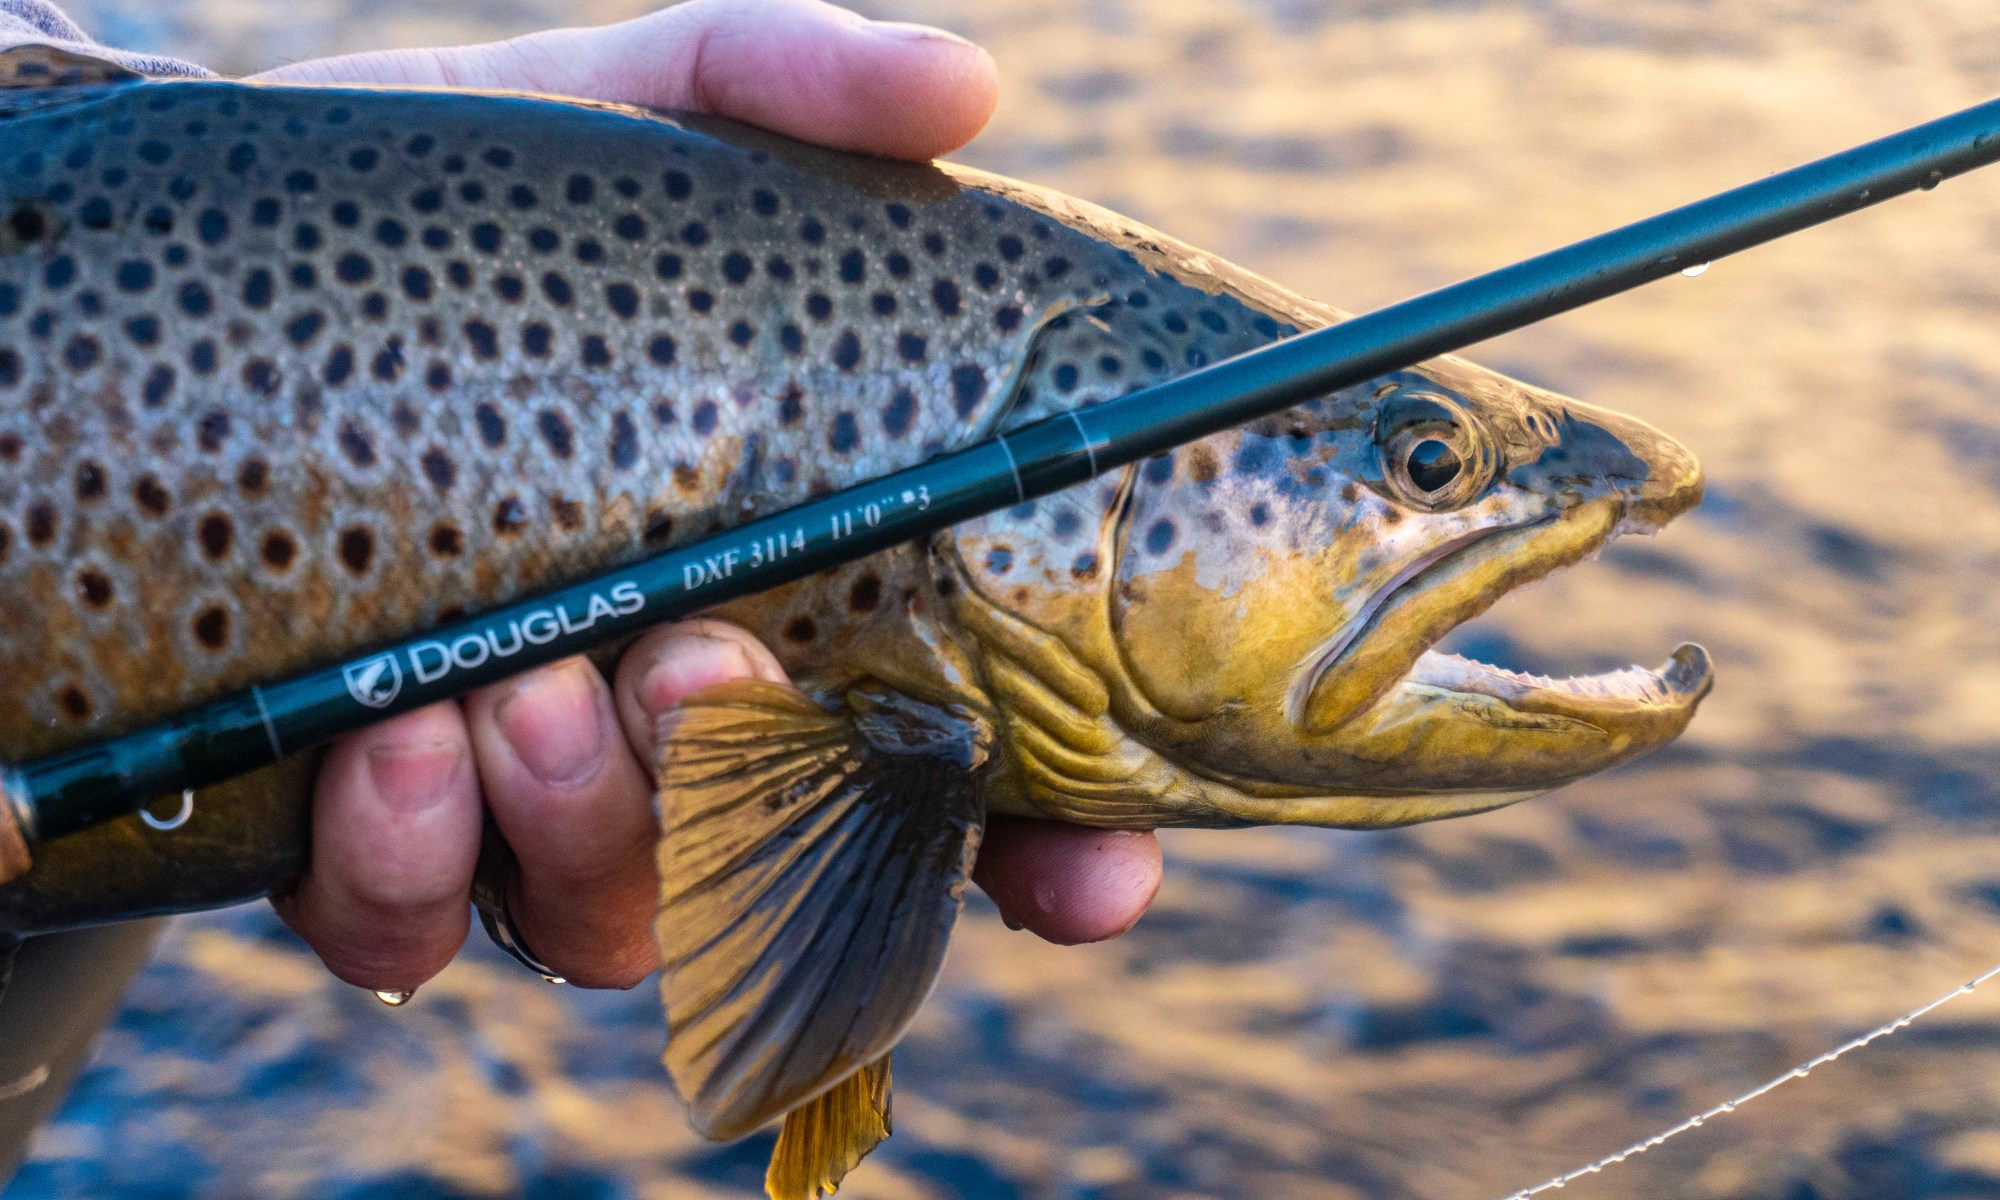 euro nymphing rod header image